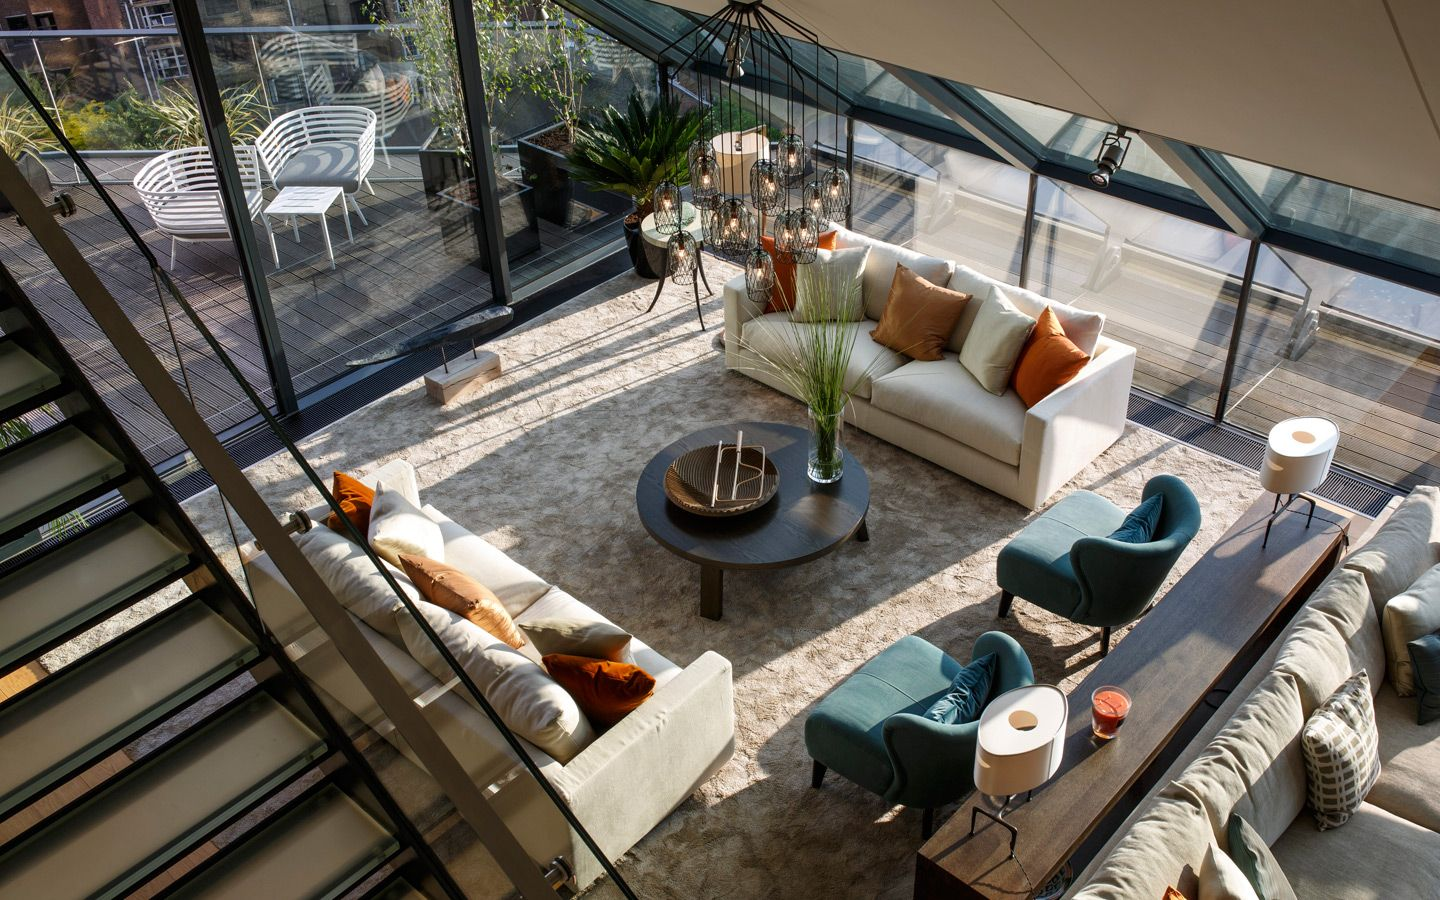 Studio reed jonathan reed s spare crafted interior design - Take A Look Through Our Penthouse Galleries Looking At The Interiors Architecture Landscapes Amenities Views From Our Beautiful Penthouses